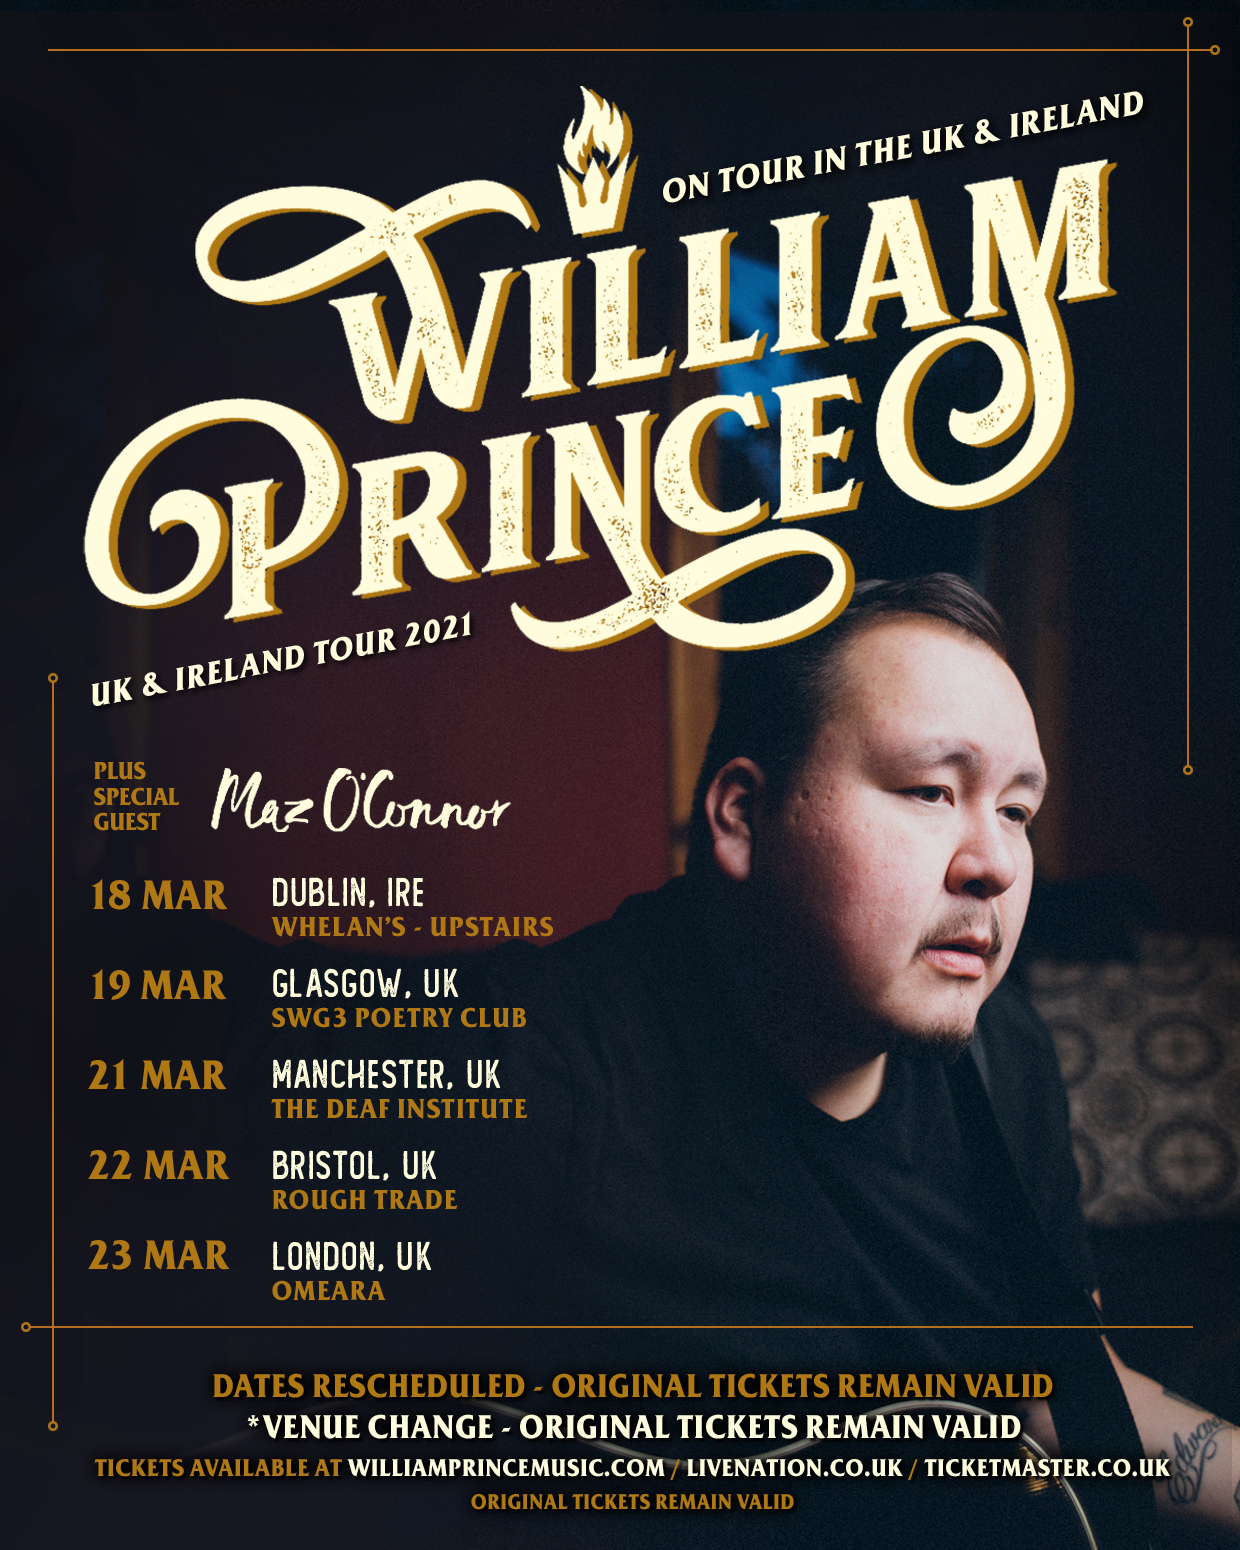 Bristol (opening for William Prince)